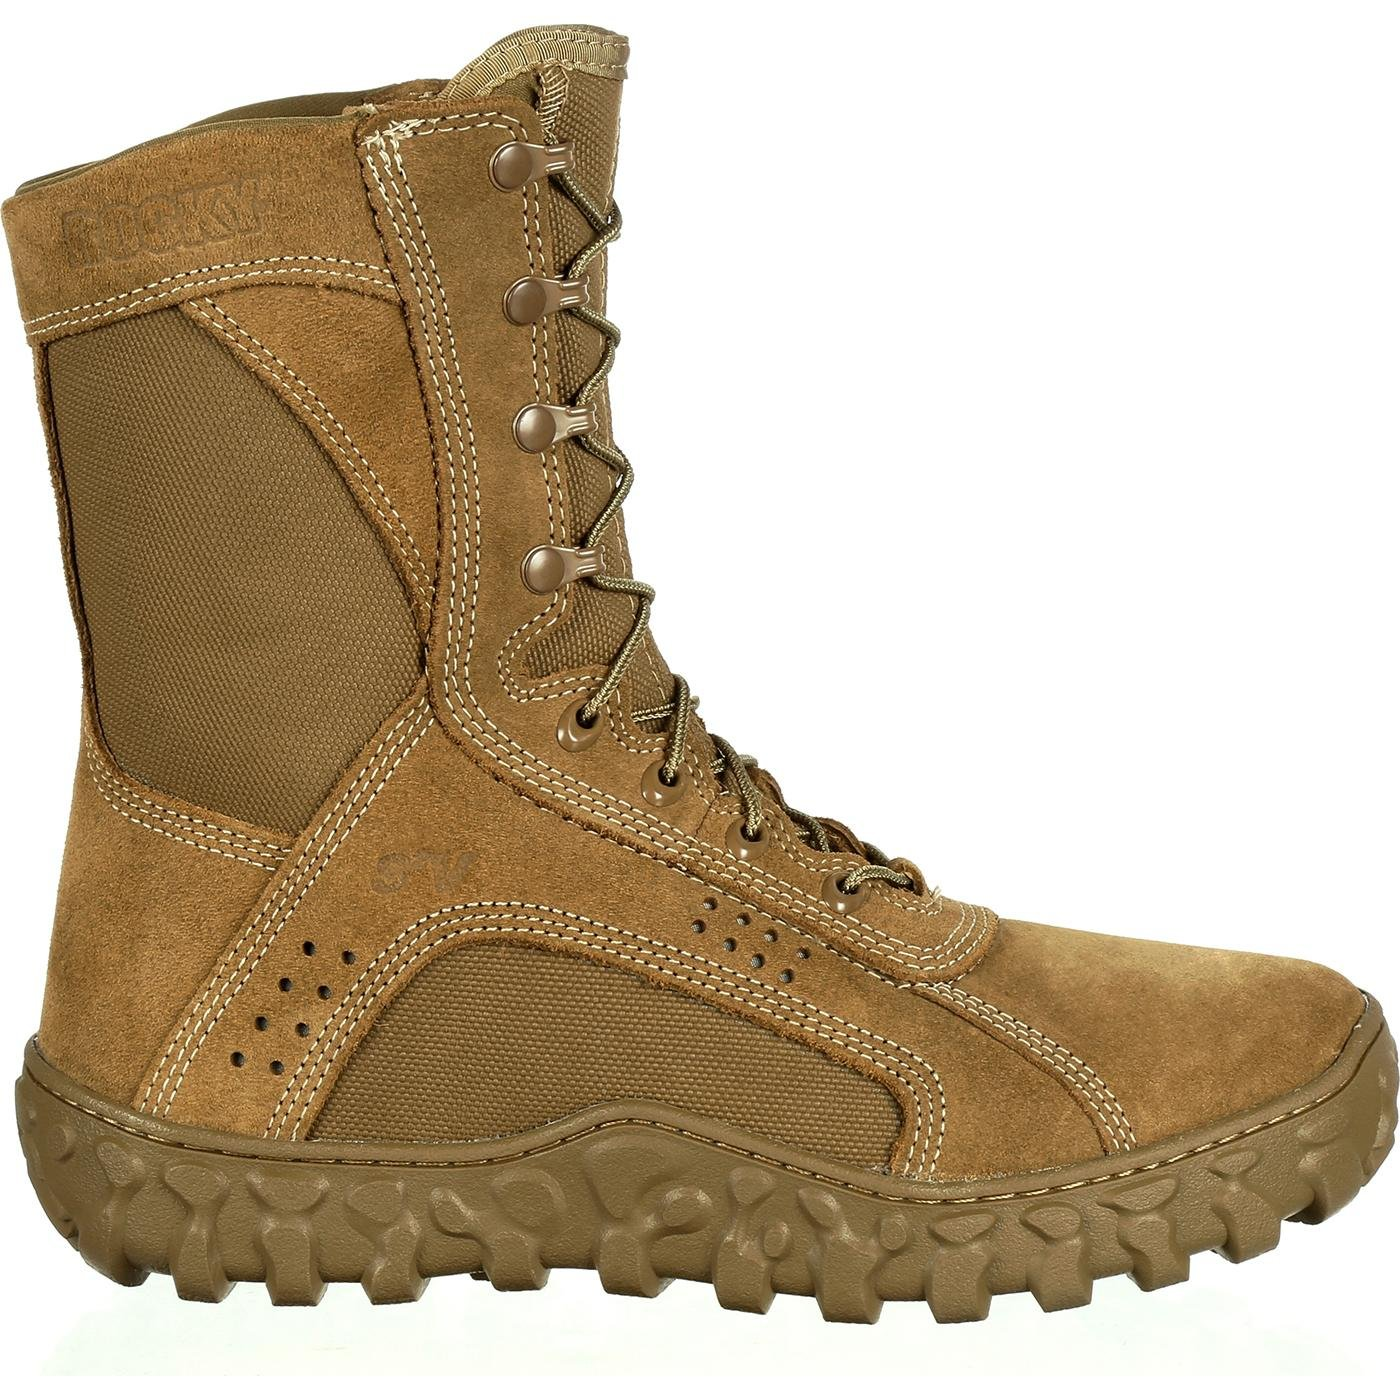 ROCKY Mens Rkc050 Military and Tactical Boot